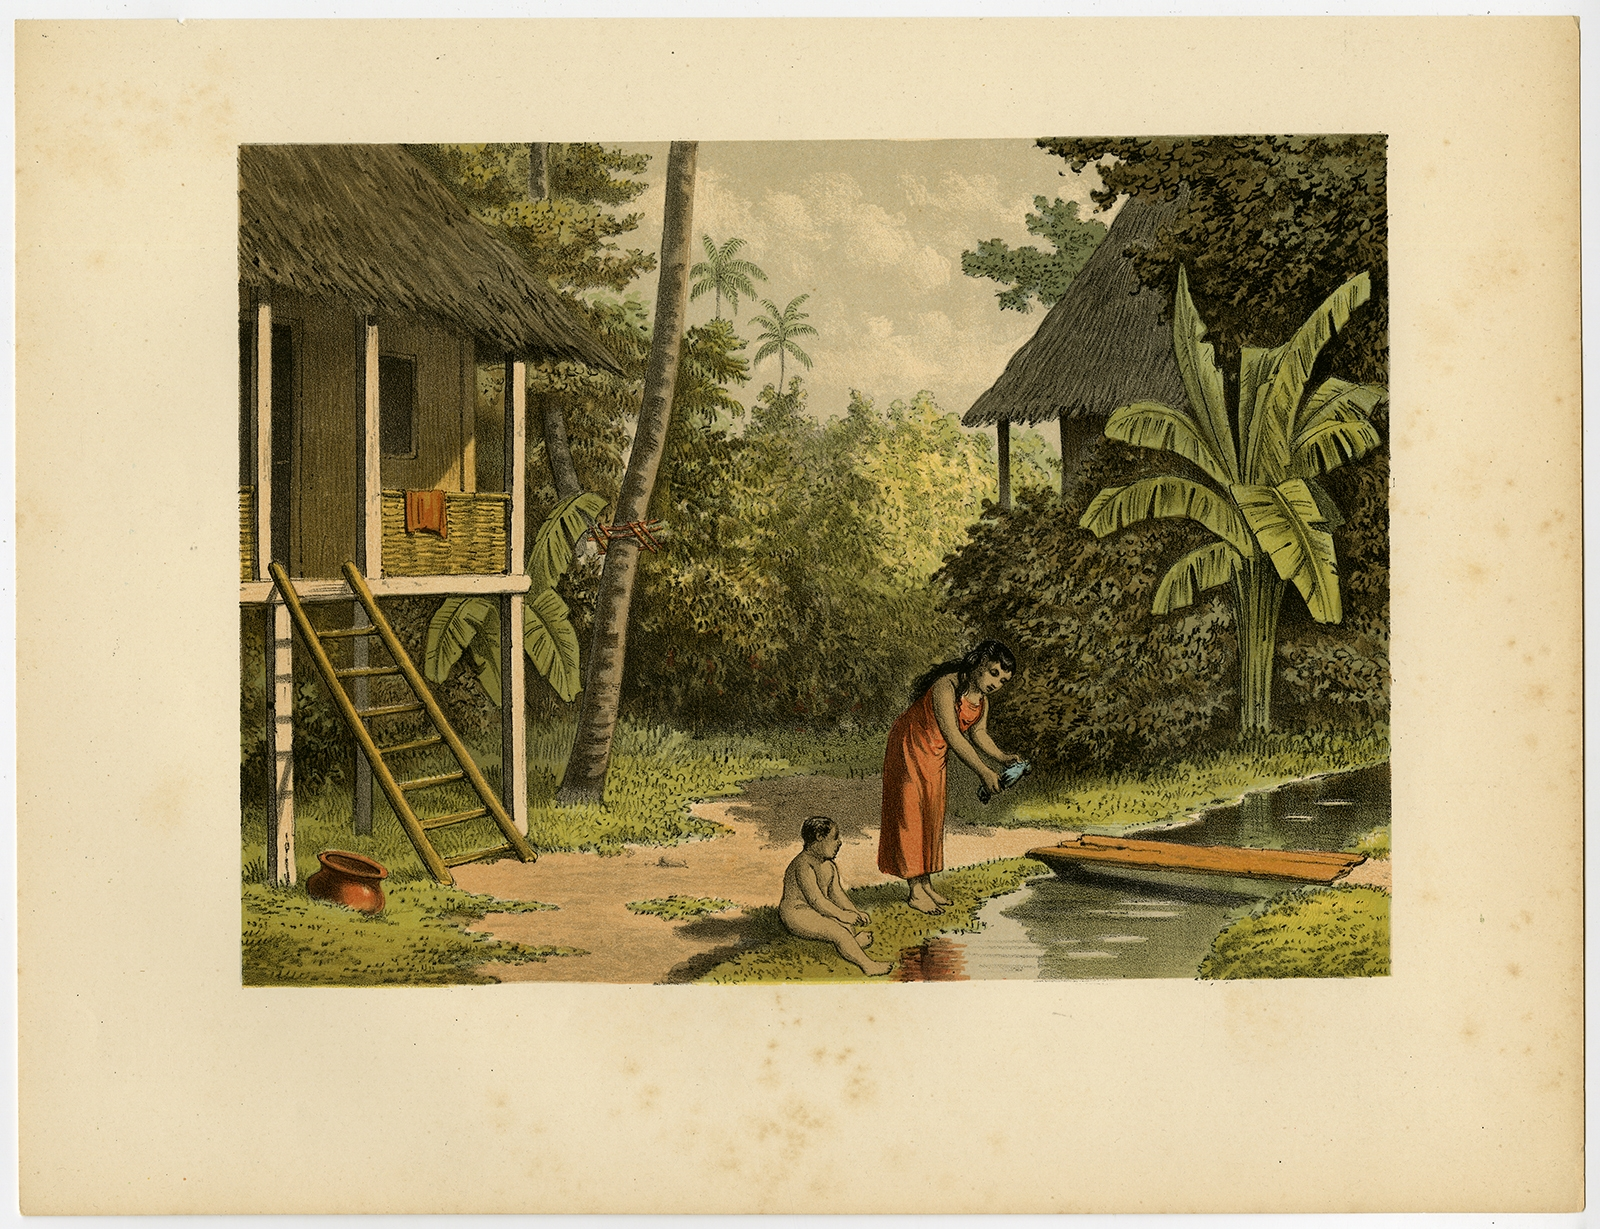 Antique Print of a House in Oleh-Leh 'Aceh' by Perelaer (1888)